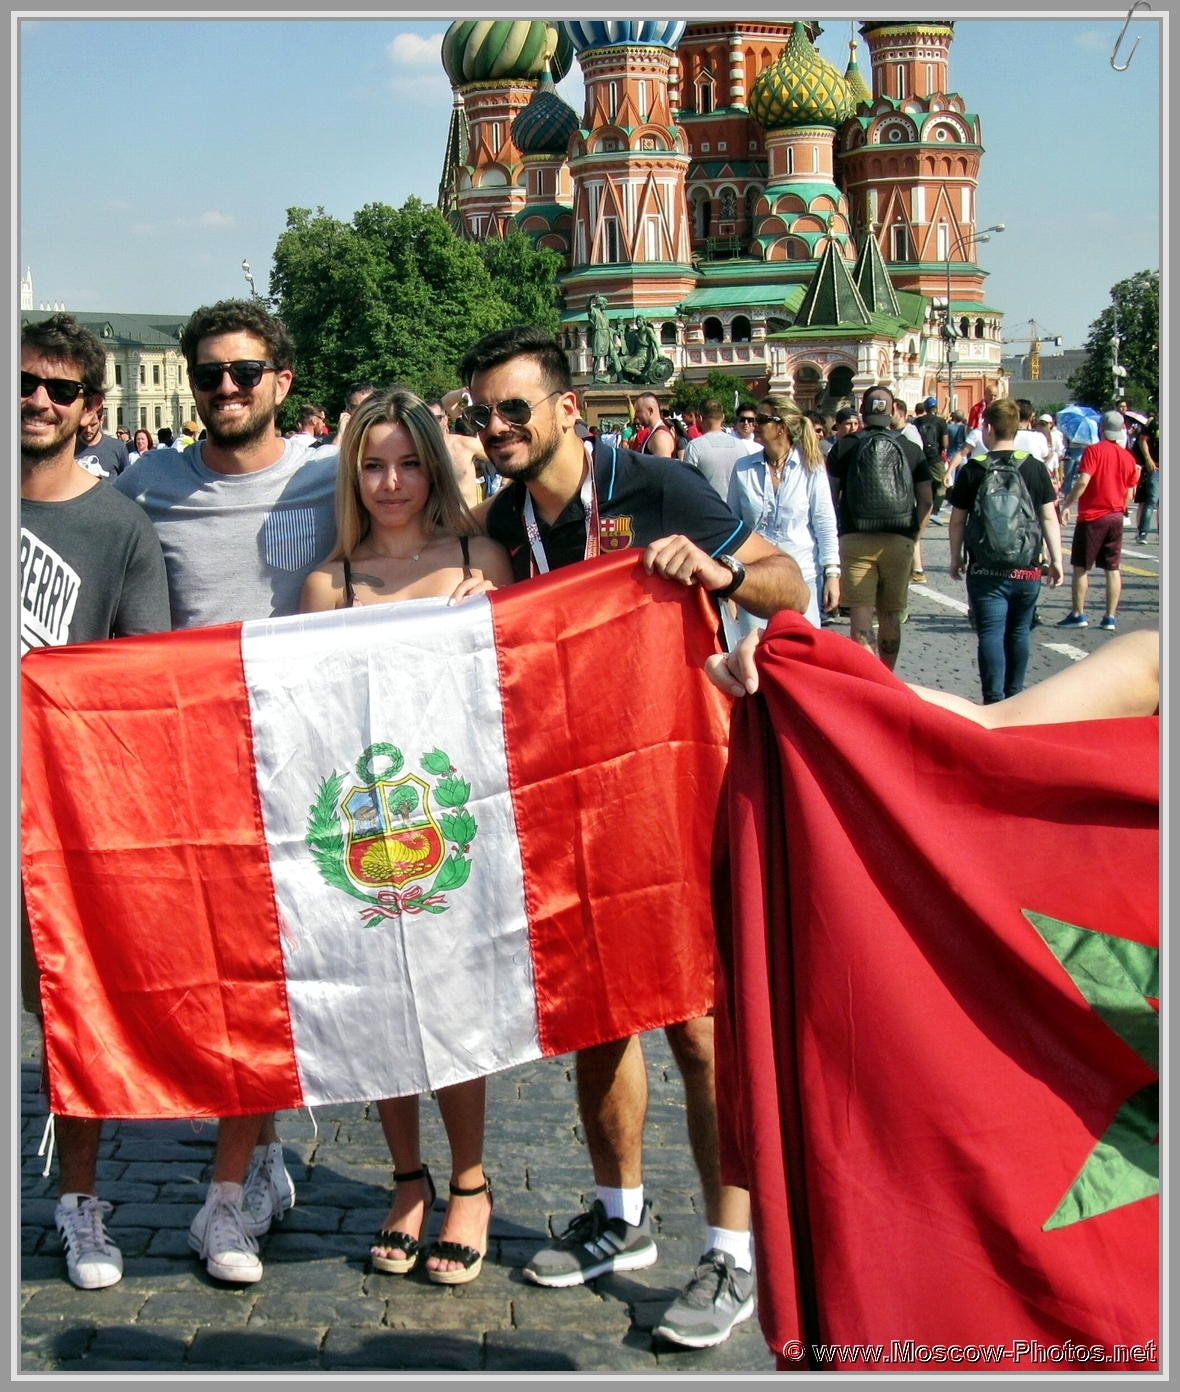 Football fans on Red Square in Moscow during the 2018 FIFA World Cup